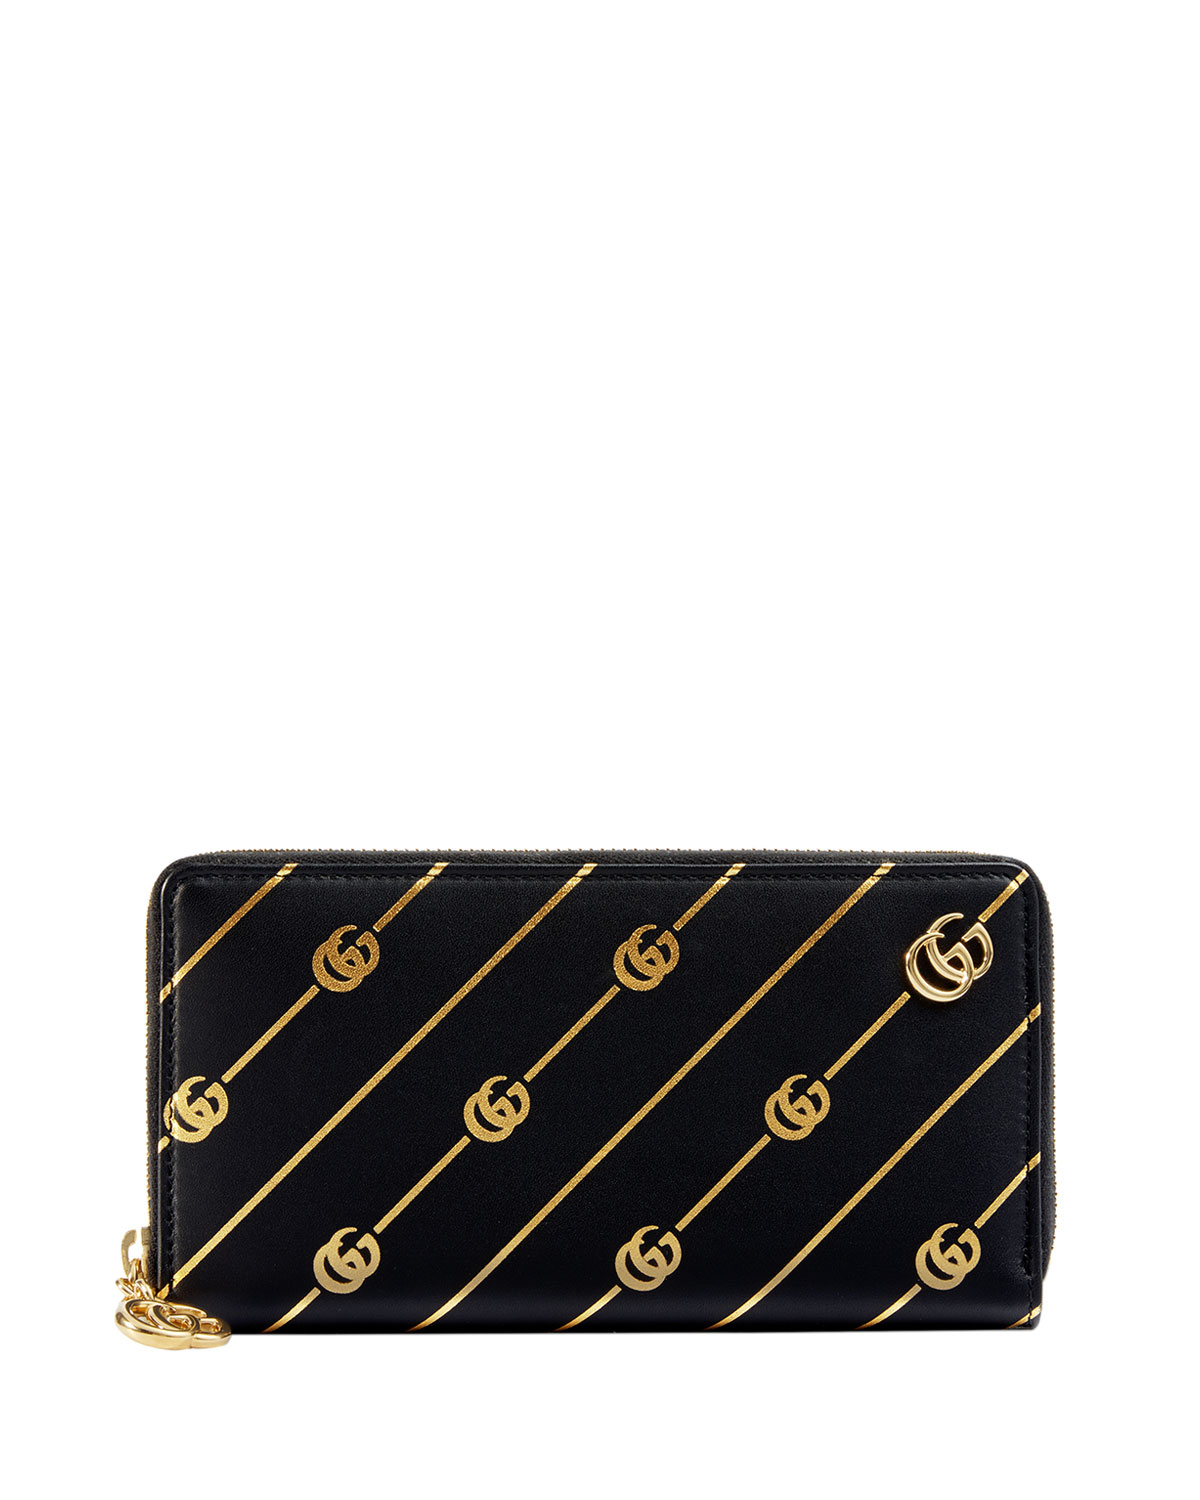 Gucci Wallets GG Diagonal Leather Zip-Around Wallet, BLACK/GOLD